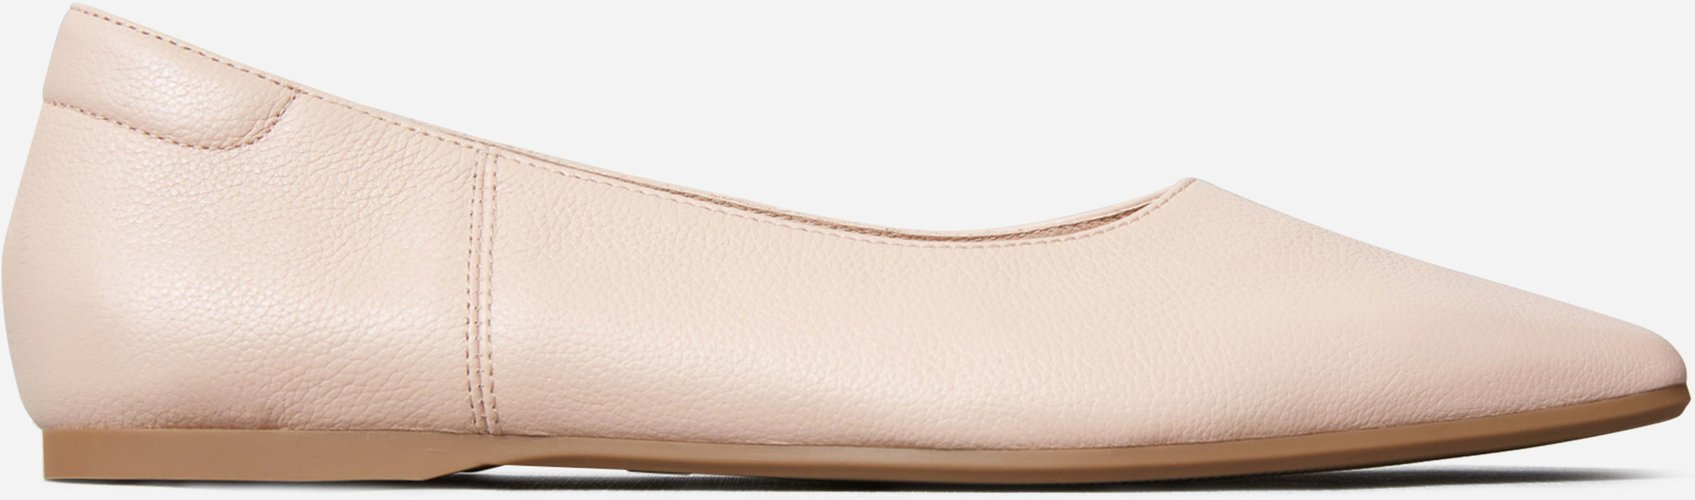 Tapered Ballet Flat by Everlane in Cavern Pink, Size 8.5